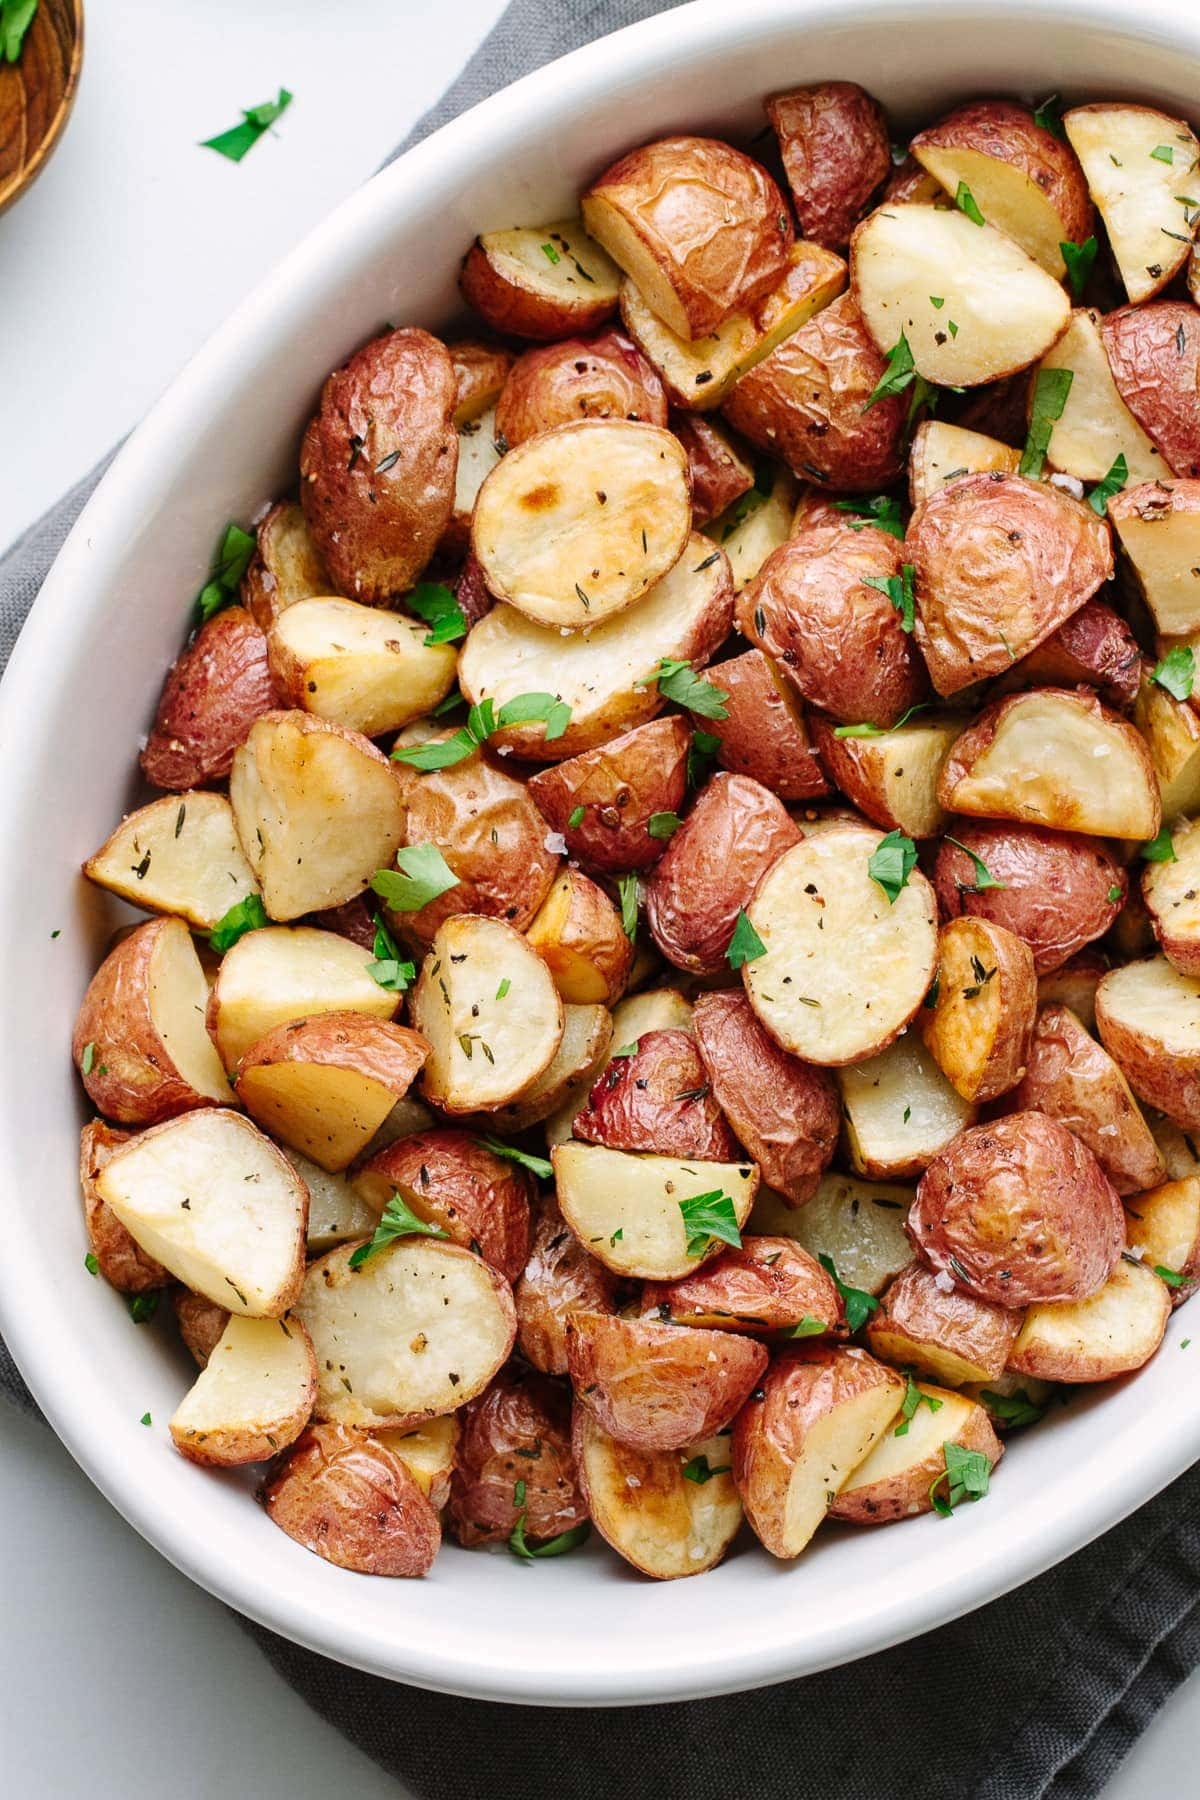 Easy Oven Roasted Red Potatoes The Simple Veganista